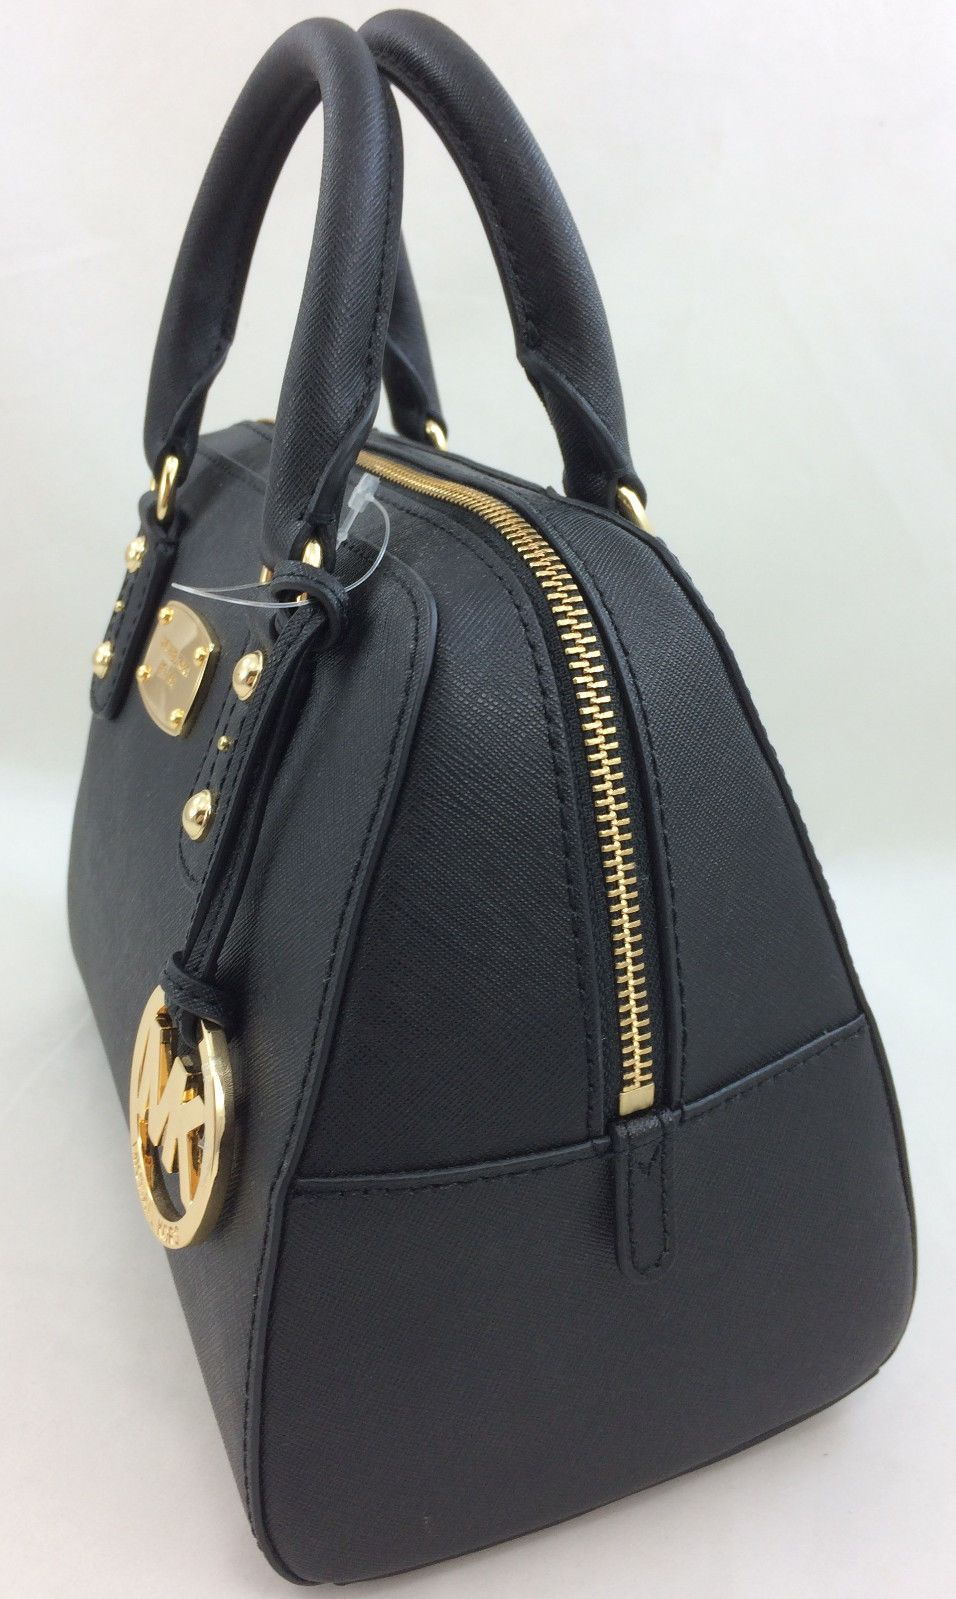 a019e348a16f ... where can i buy new authentic michael kors mk saffiano leather small  satchel handbag purse black